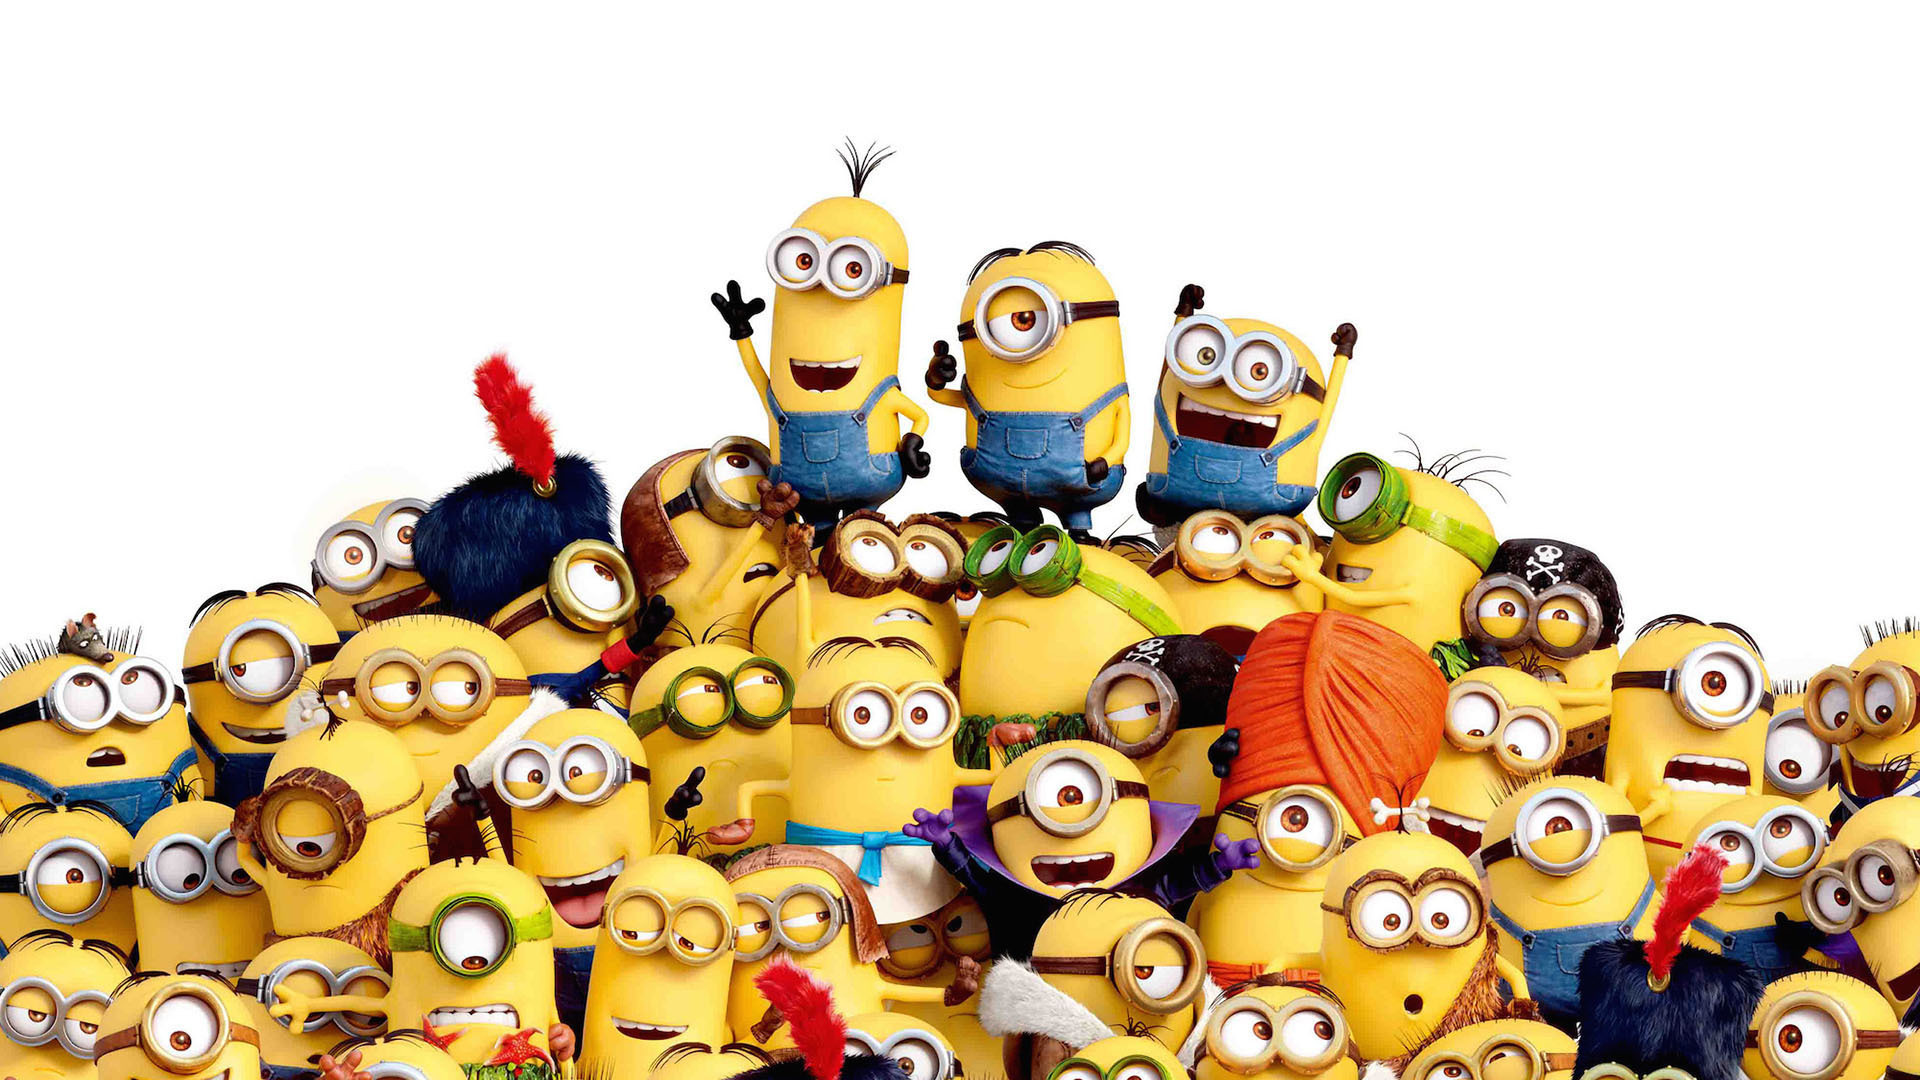 47 minions hd wallpapers | background images - wallpaper abyss - page 2